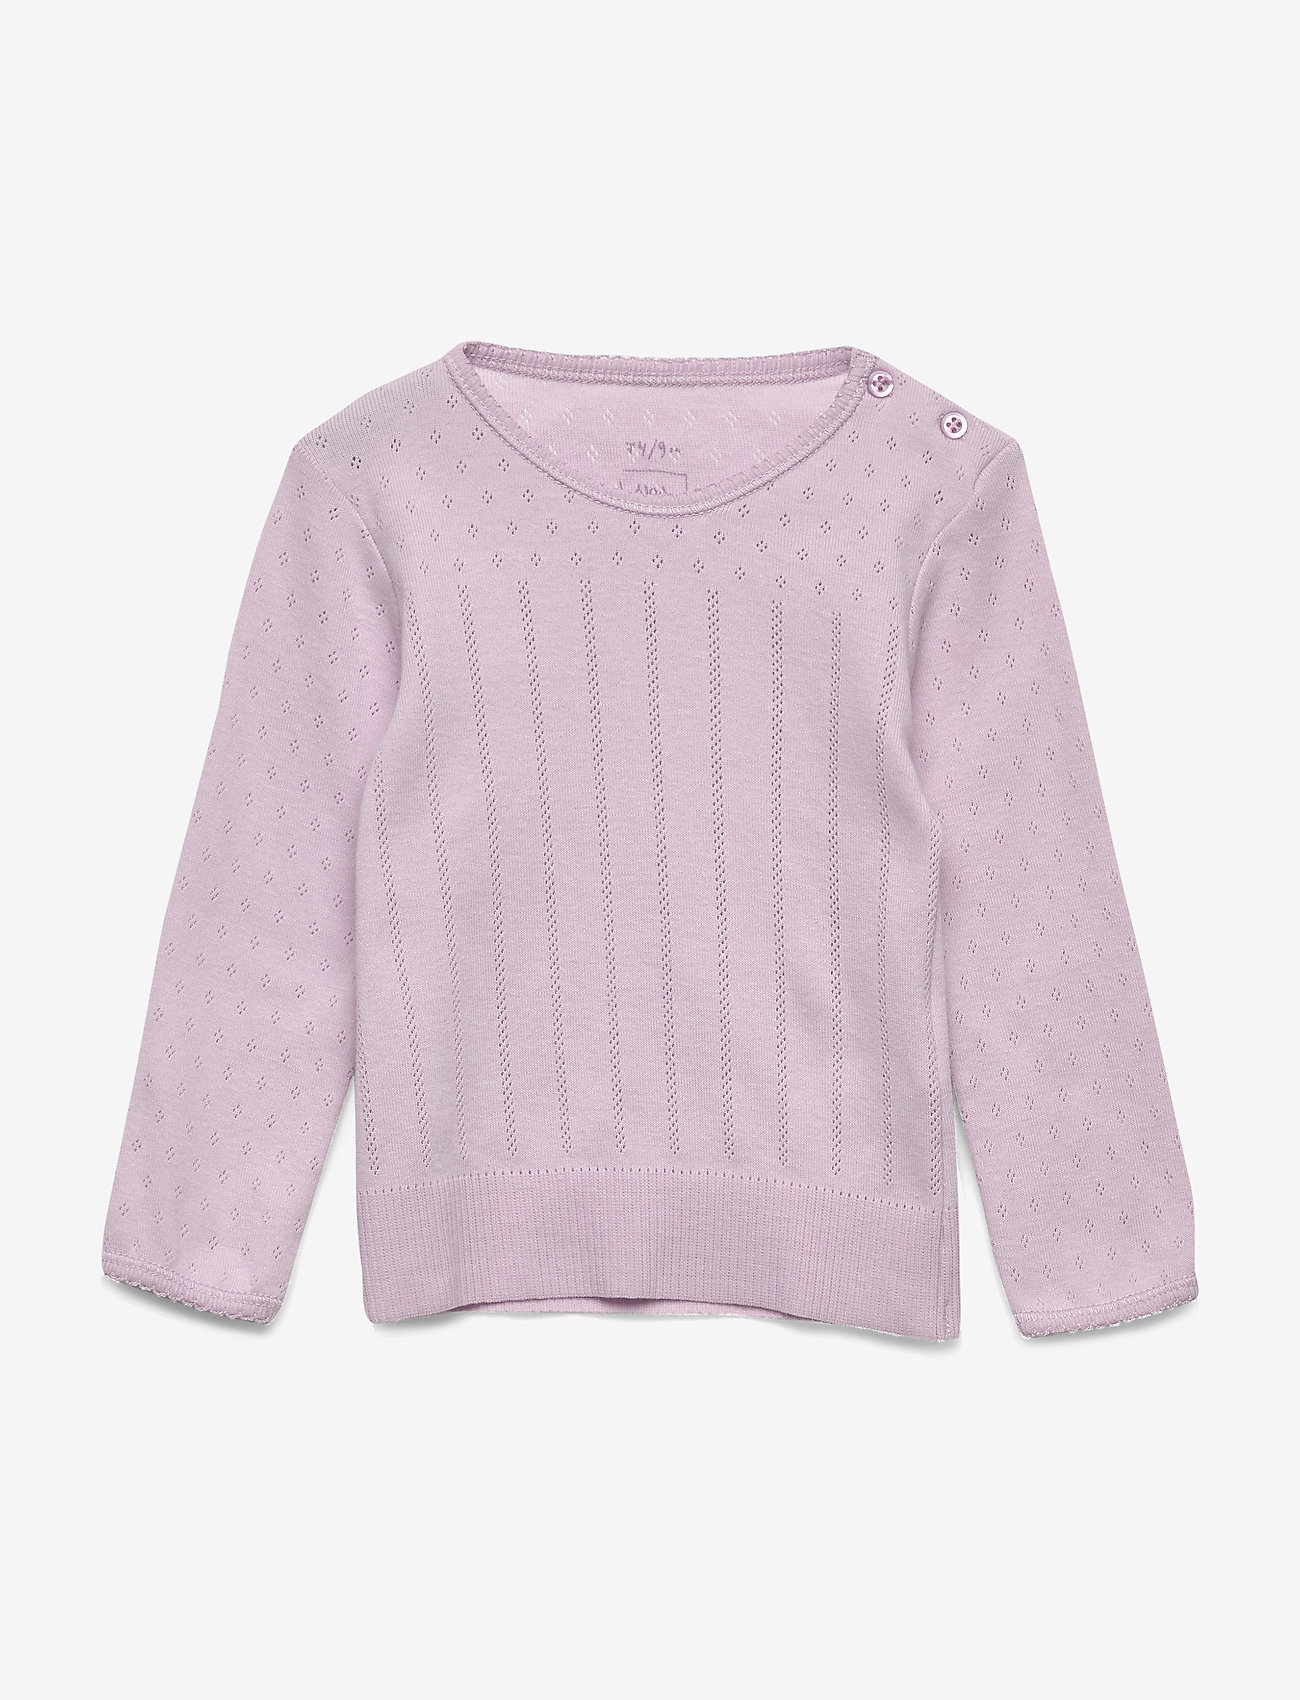 Noa Noa Miniature - T-shirt - long-sleeved t-shirts - lavender frost - 0